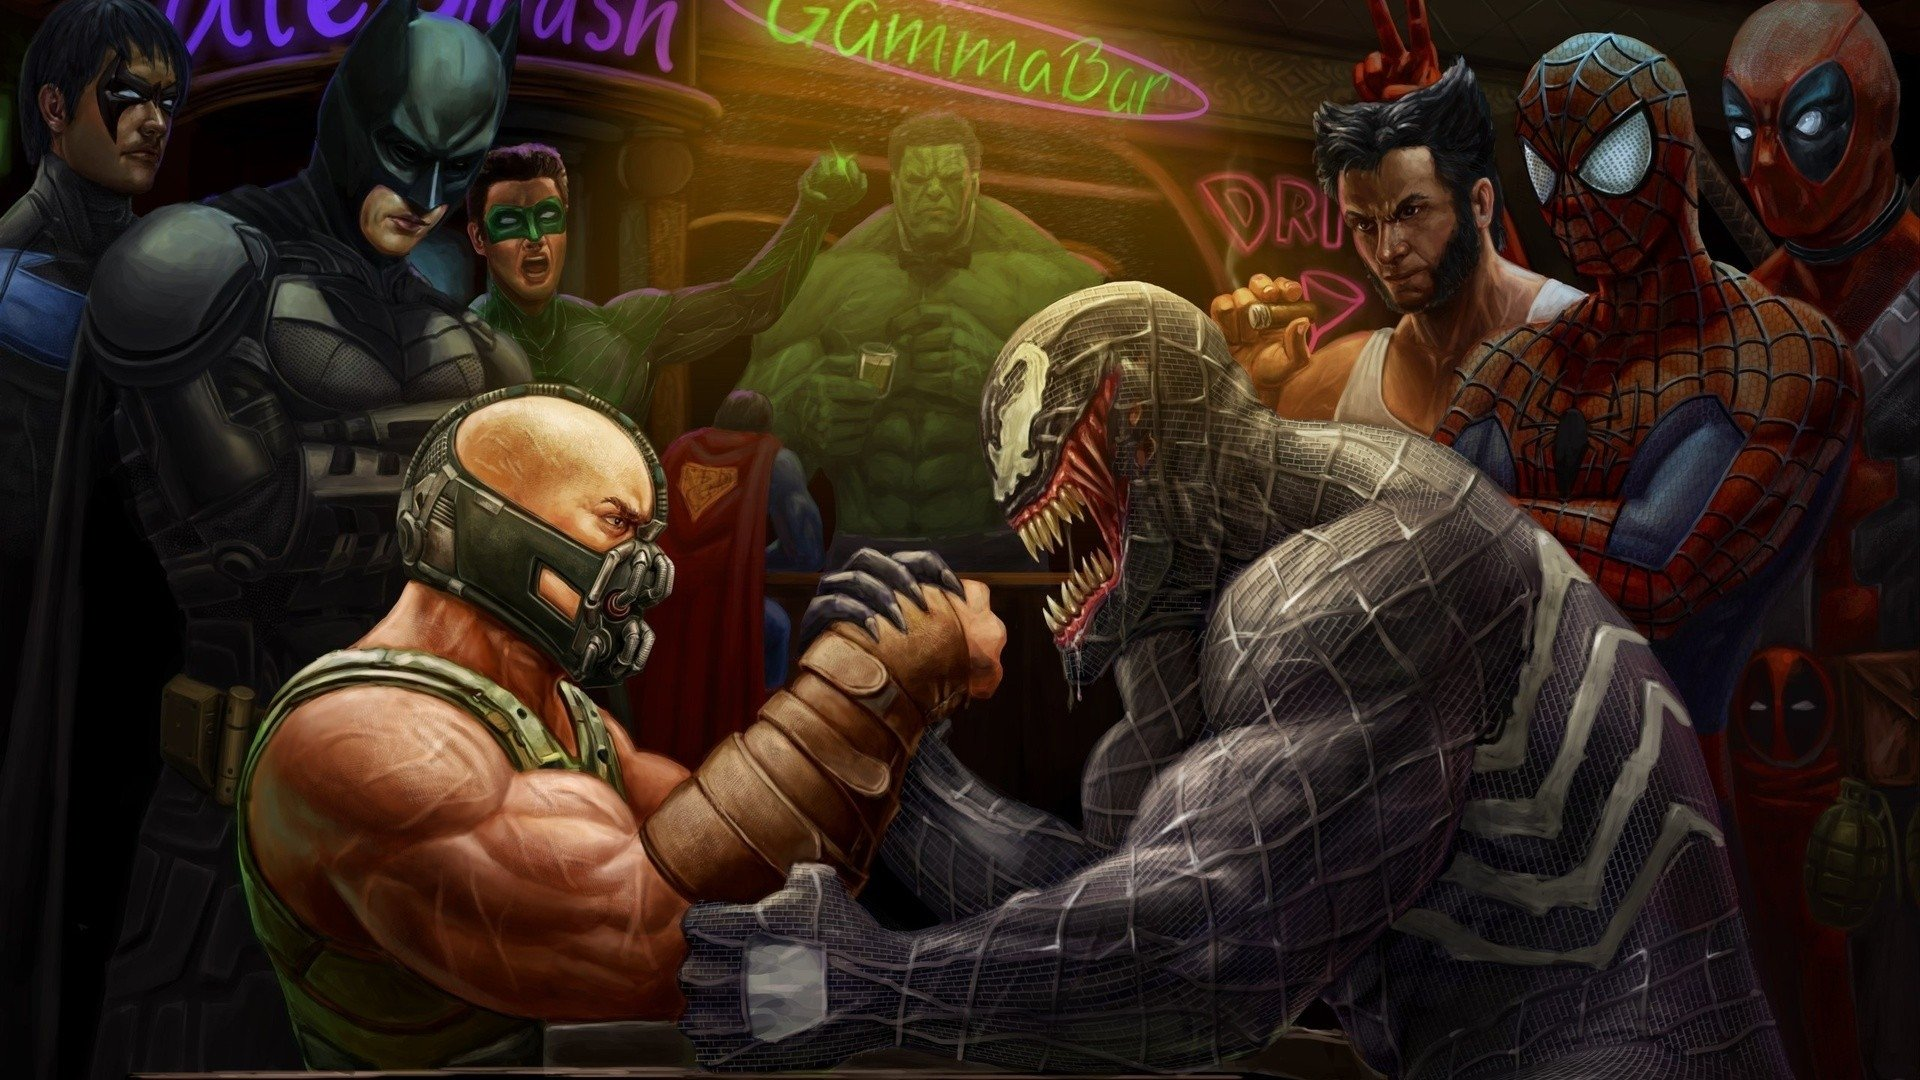 Comics - Collage  Bane (Batman) Batman Spider-Man Wolverine Green Lantern Marvel Comics DC Comics Wallpaper